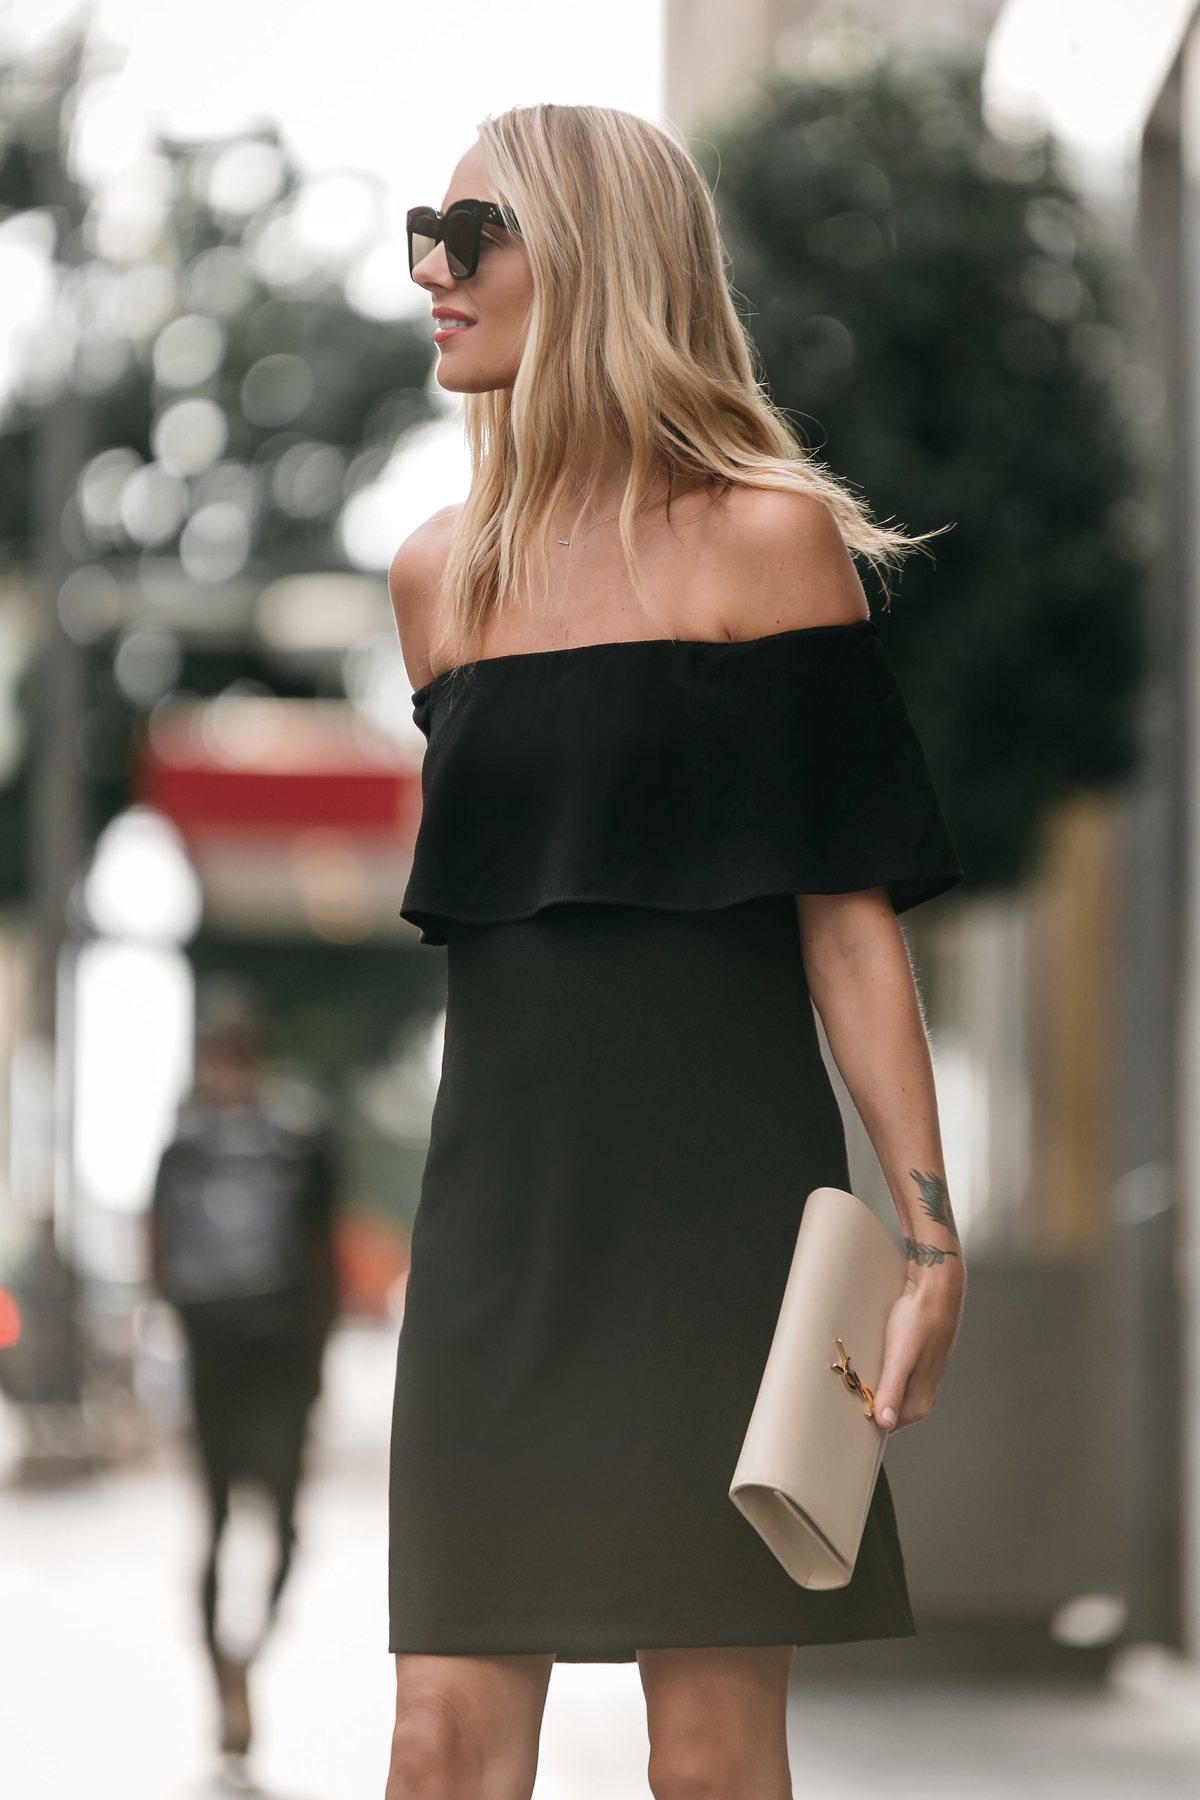 Blonde woman wearing Nordstrom off the shoulder black dress YSL nude clutch little black dress street style dallas blogger fashion blogger